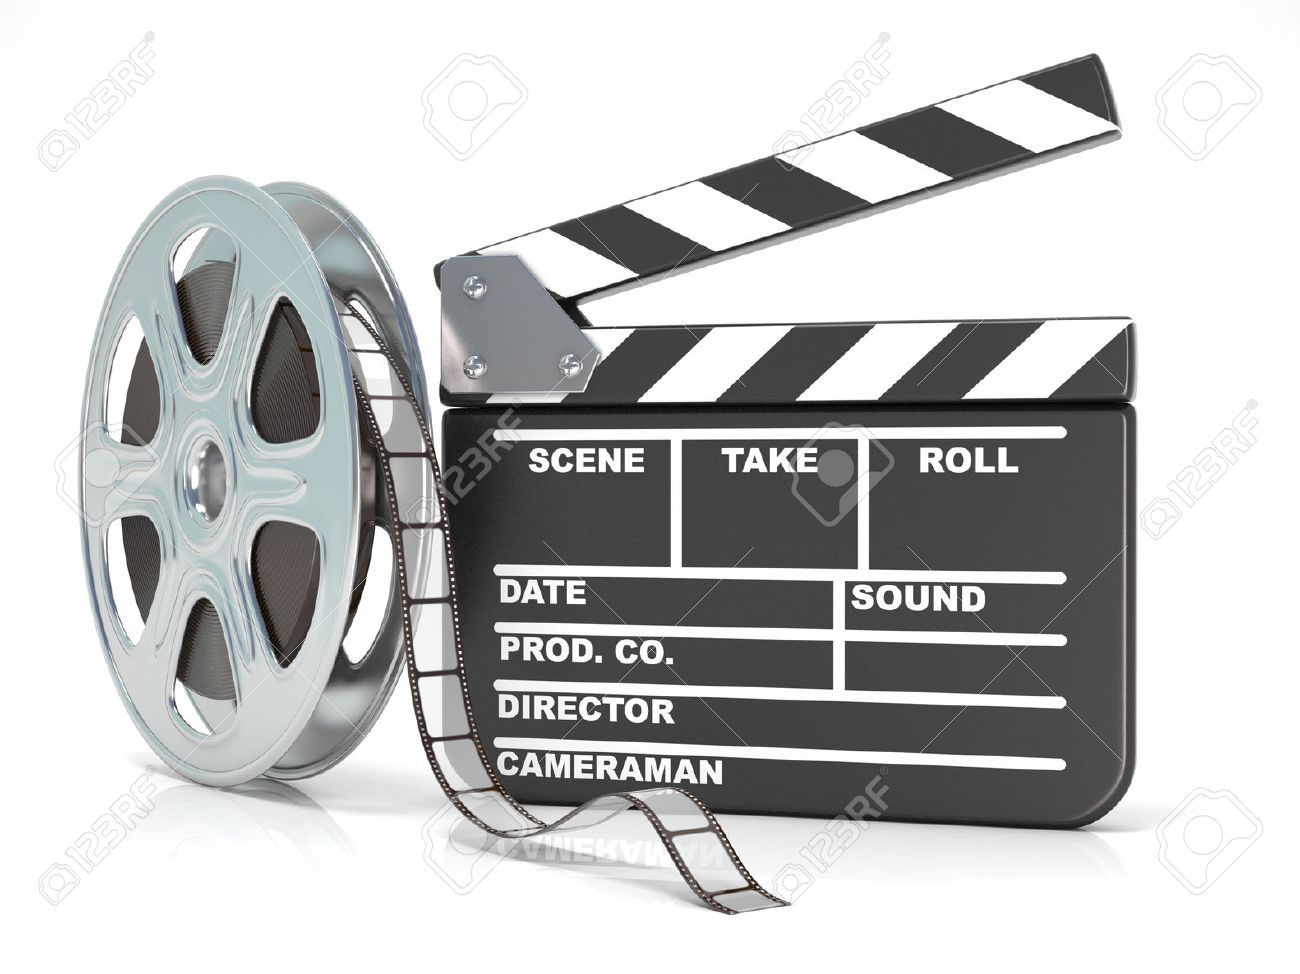 Film reel and movie clapper board video icon 3d render film reel and movie clapper board video icon 3d render illustration isolated on white thecheapjerseys Choice Image